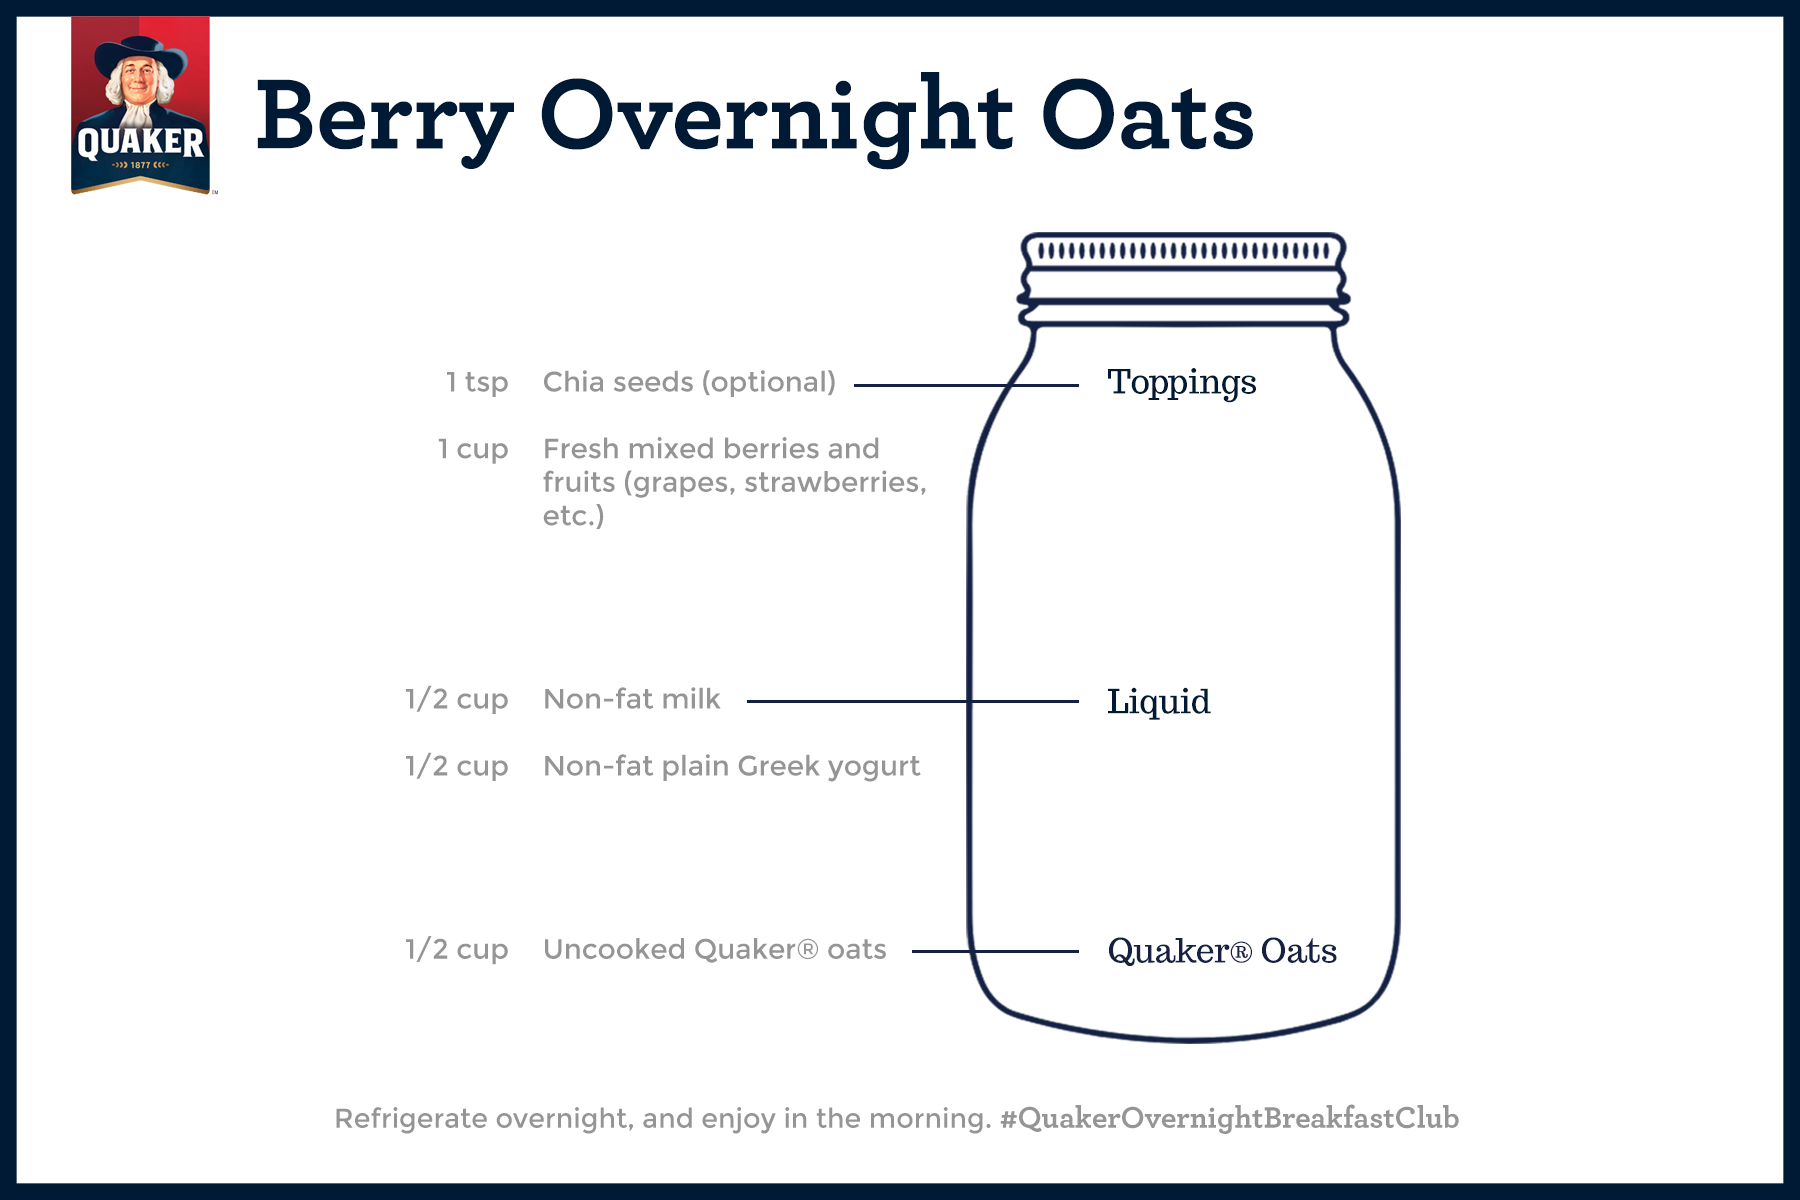 Berry Overnight Oats